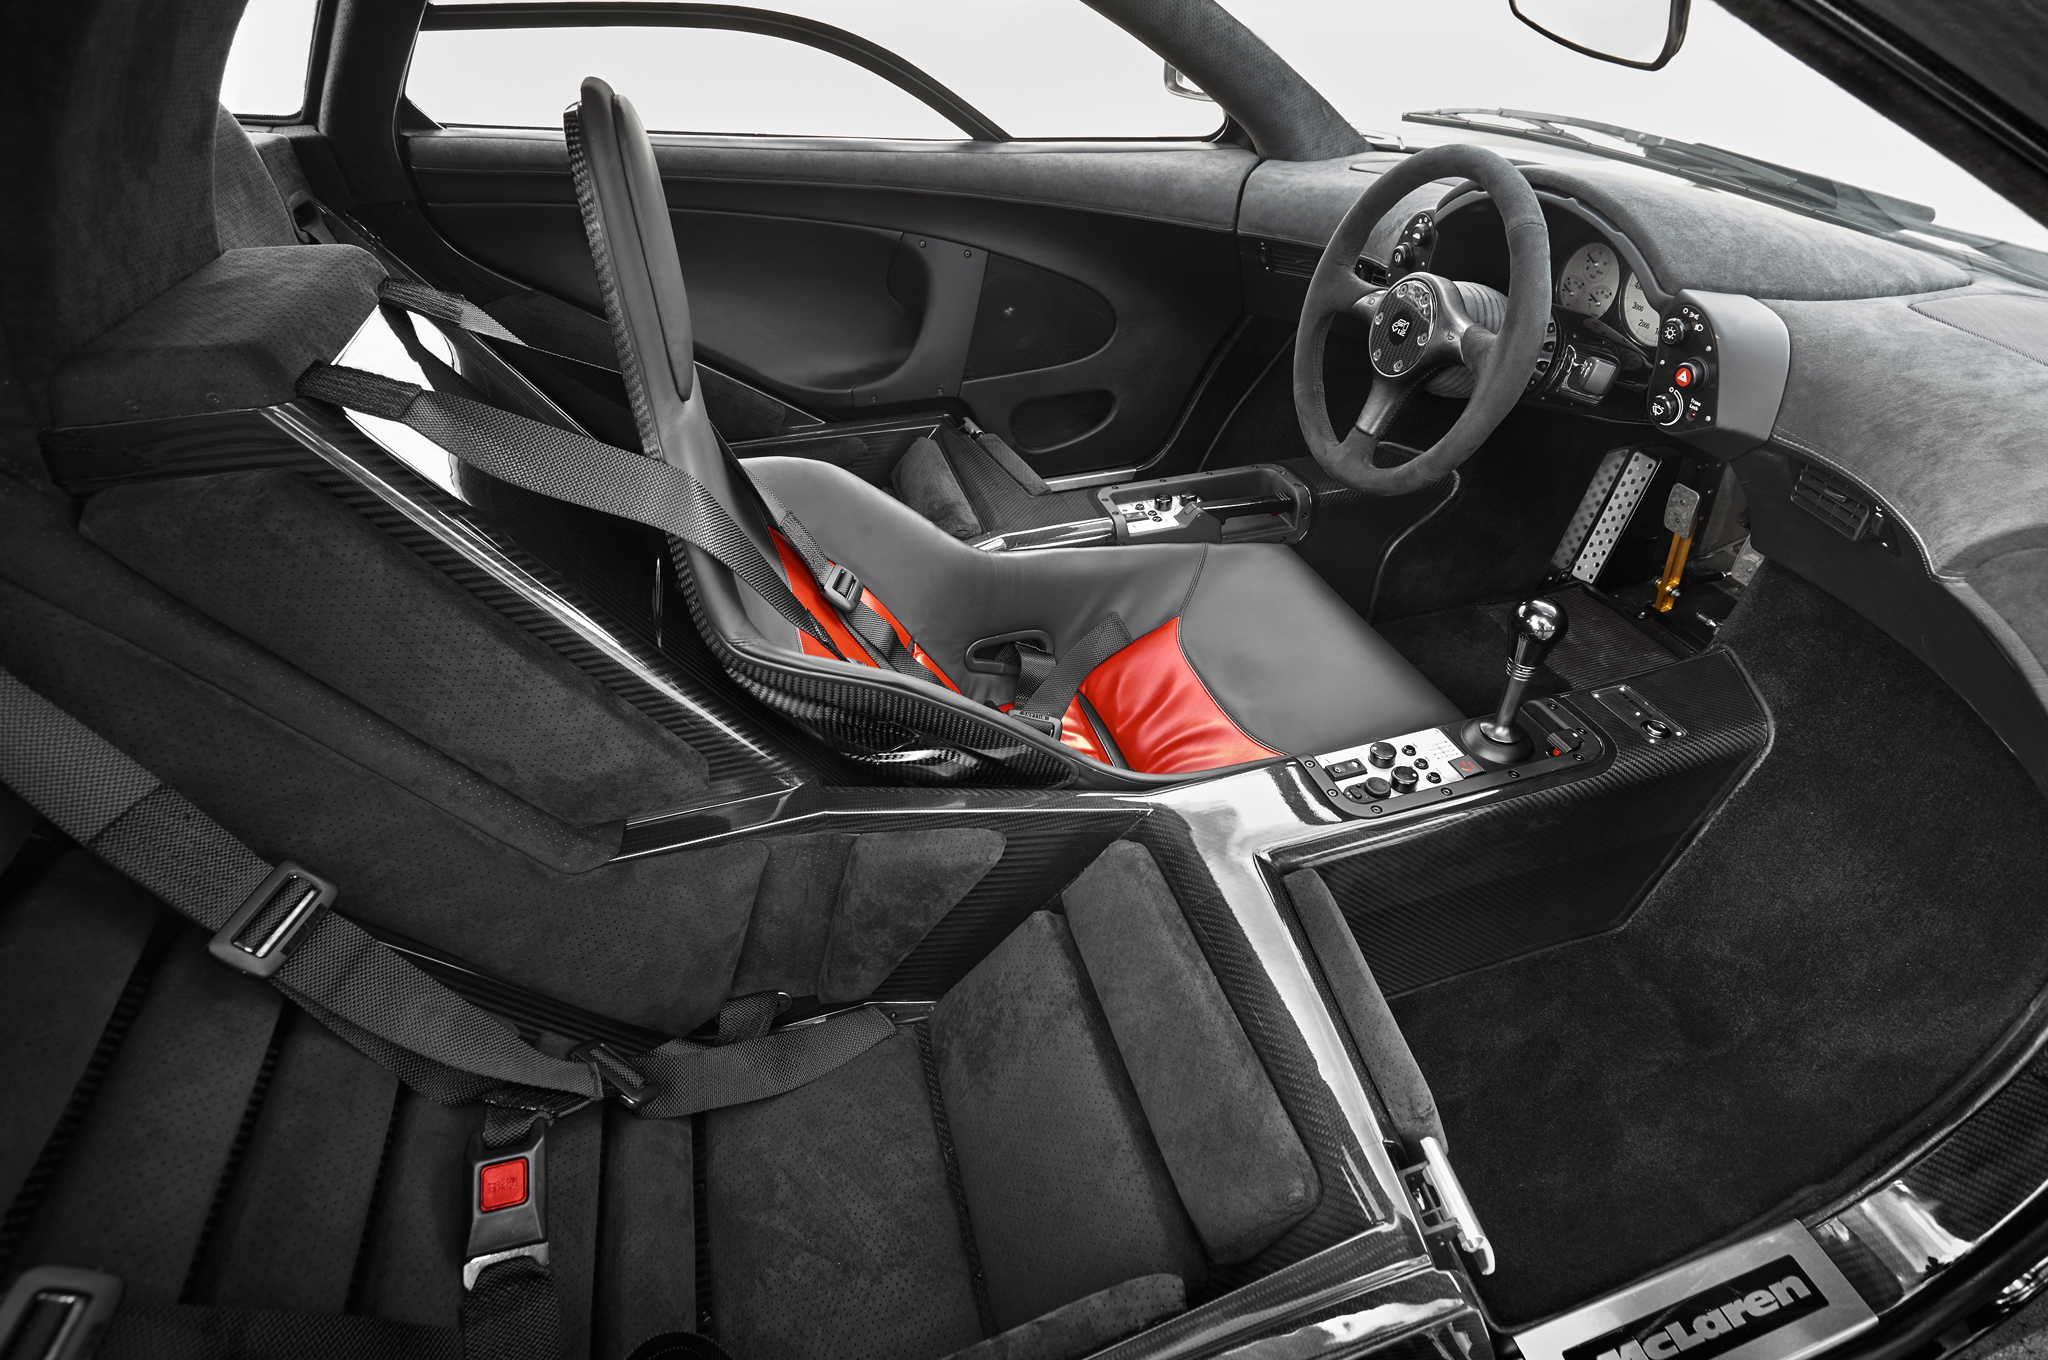 Interior view of the McLaren F1, with three seats.